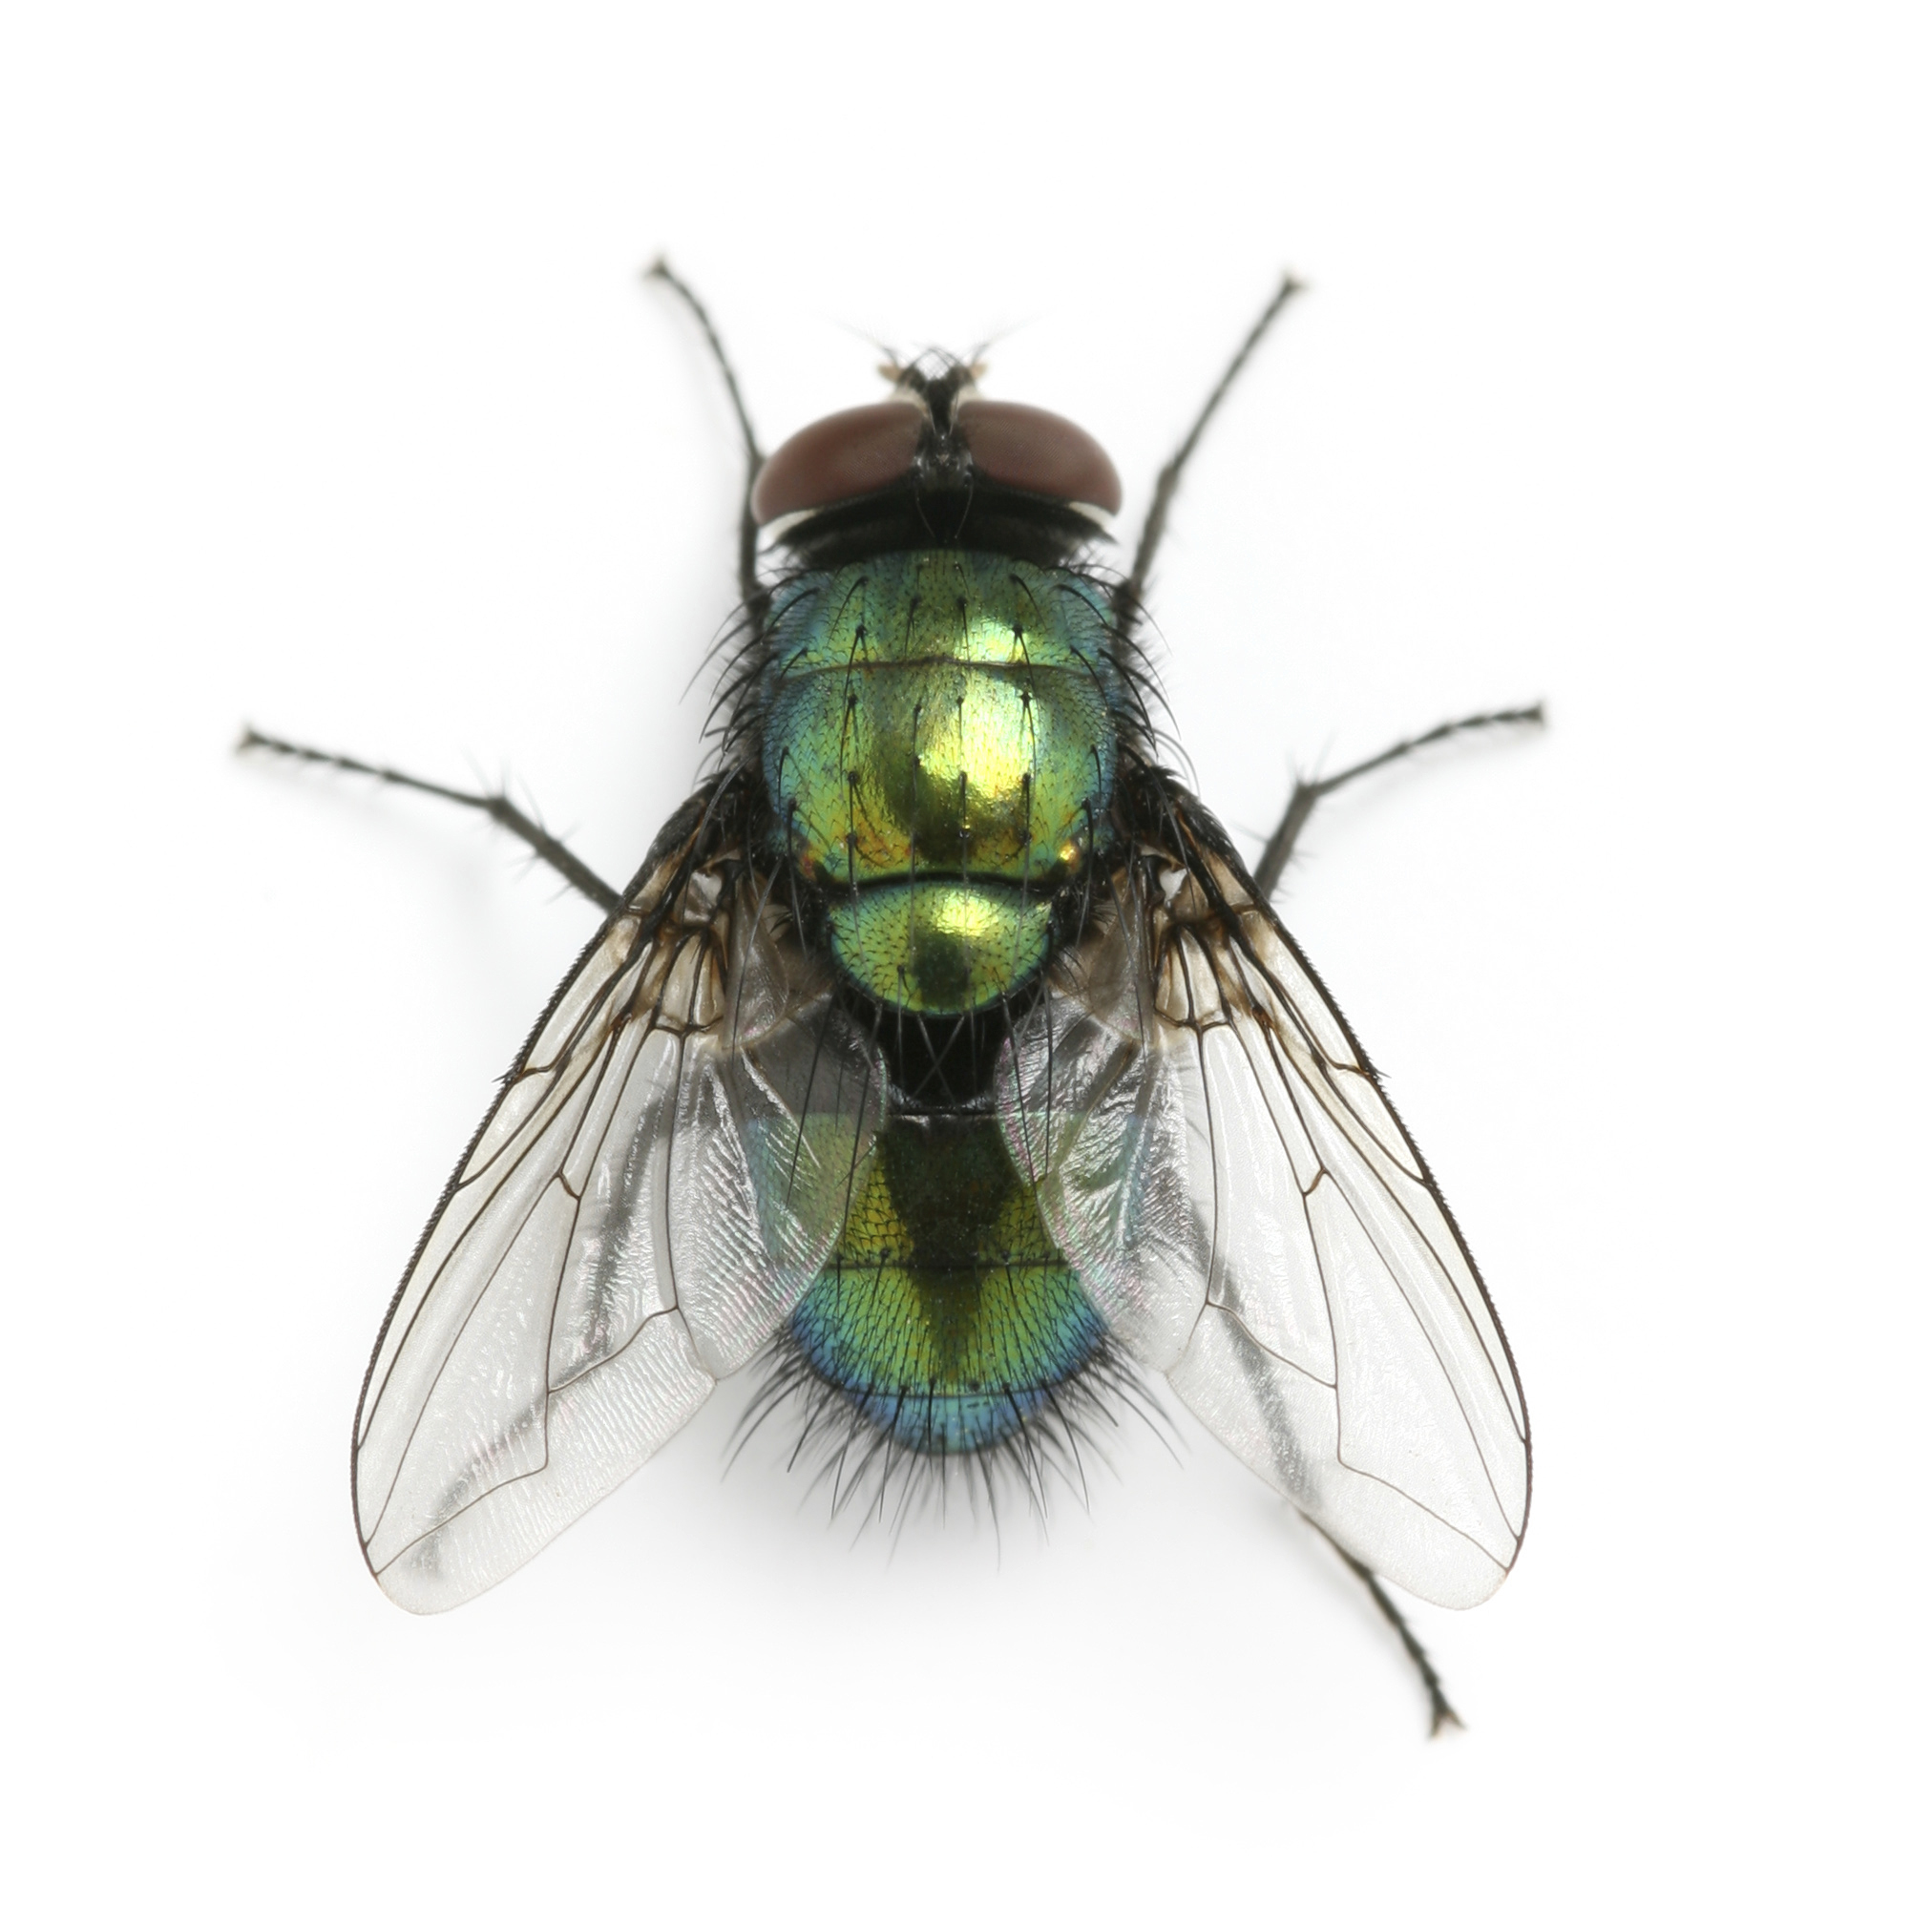 HQ Fly Wallpapers | File 987.45Kb